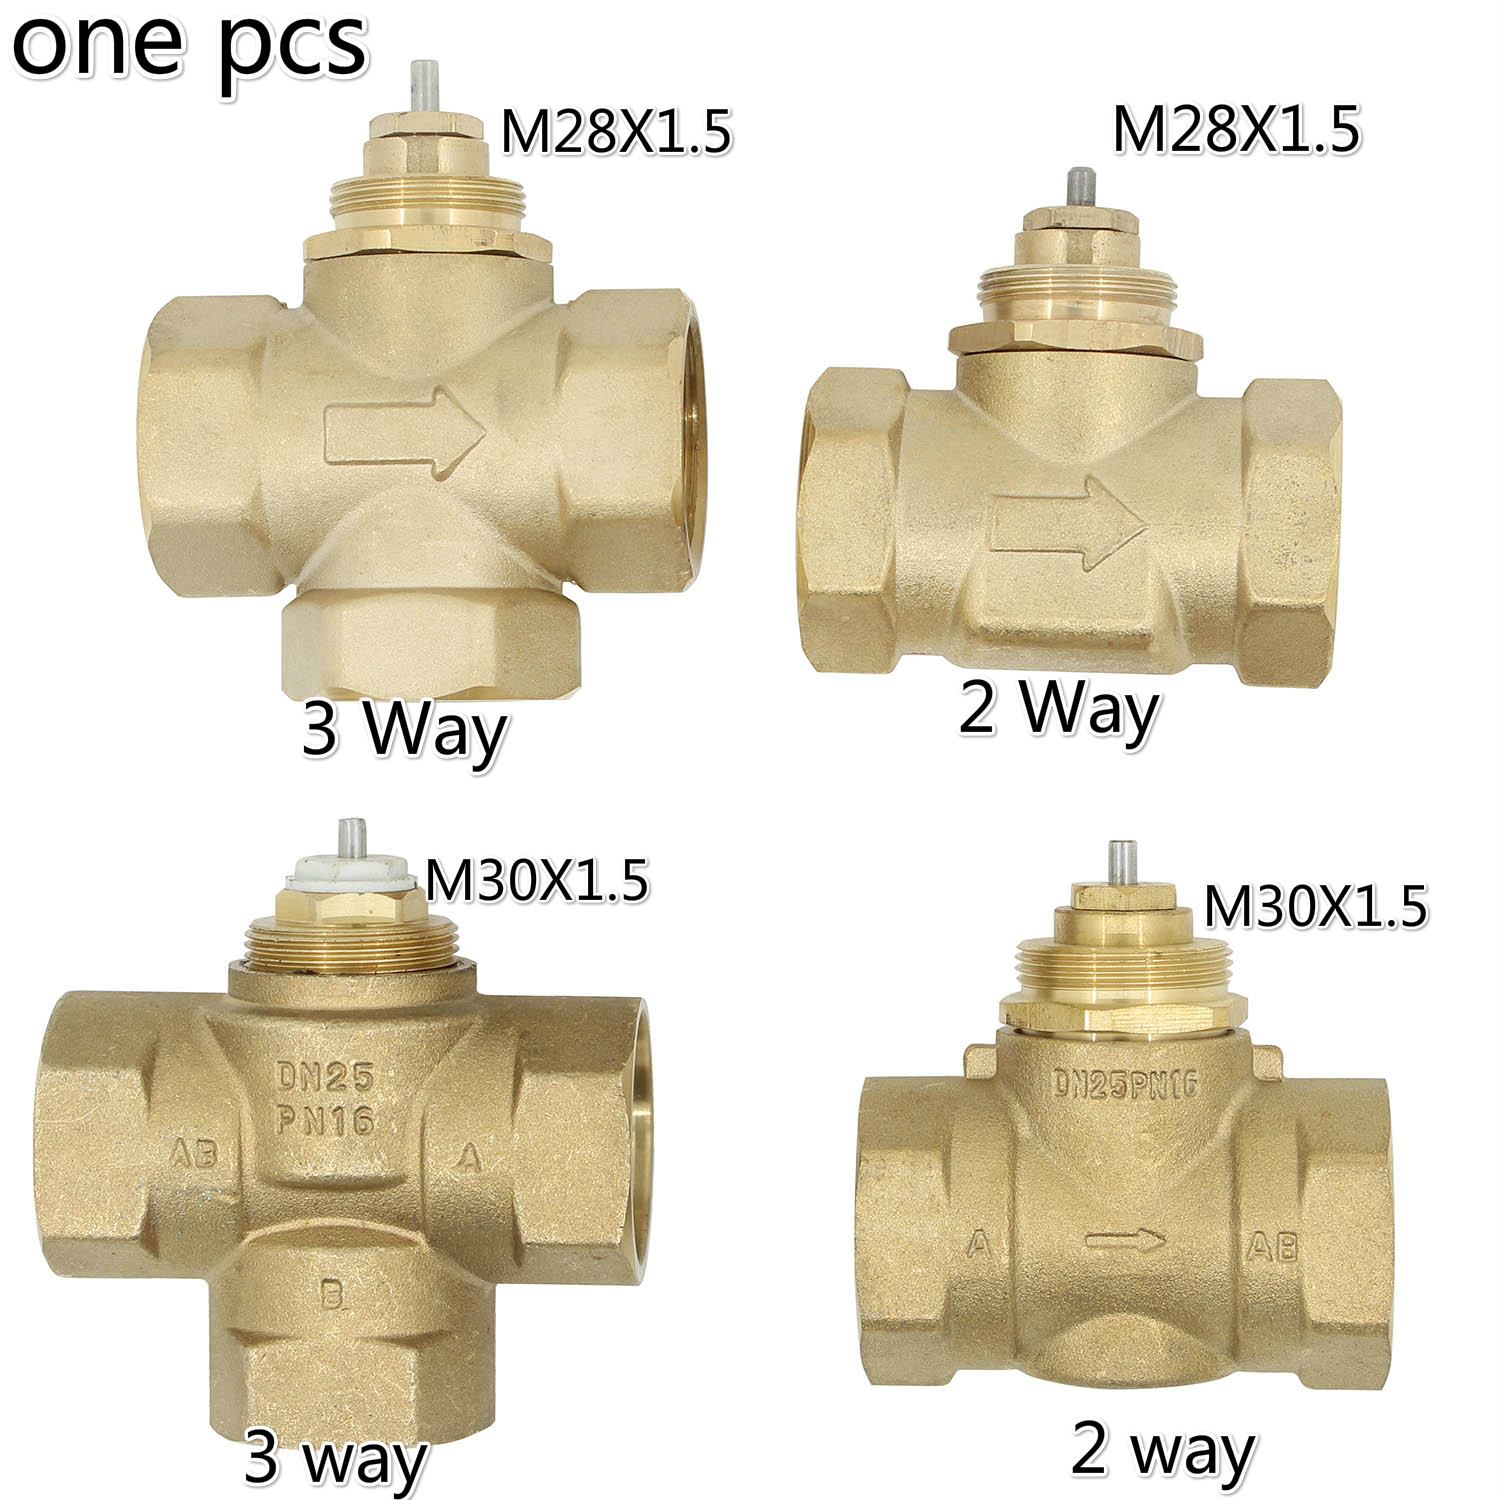 Brass Three-way Valve Two-way Valve DN15 DN20 DN25 M30X1.5 M28X1.5